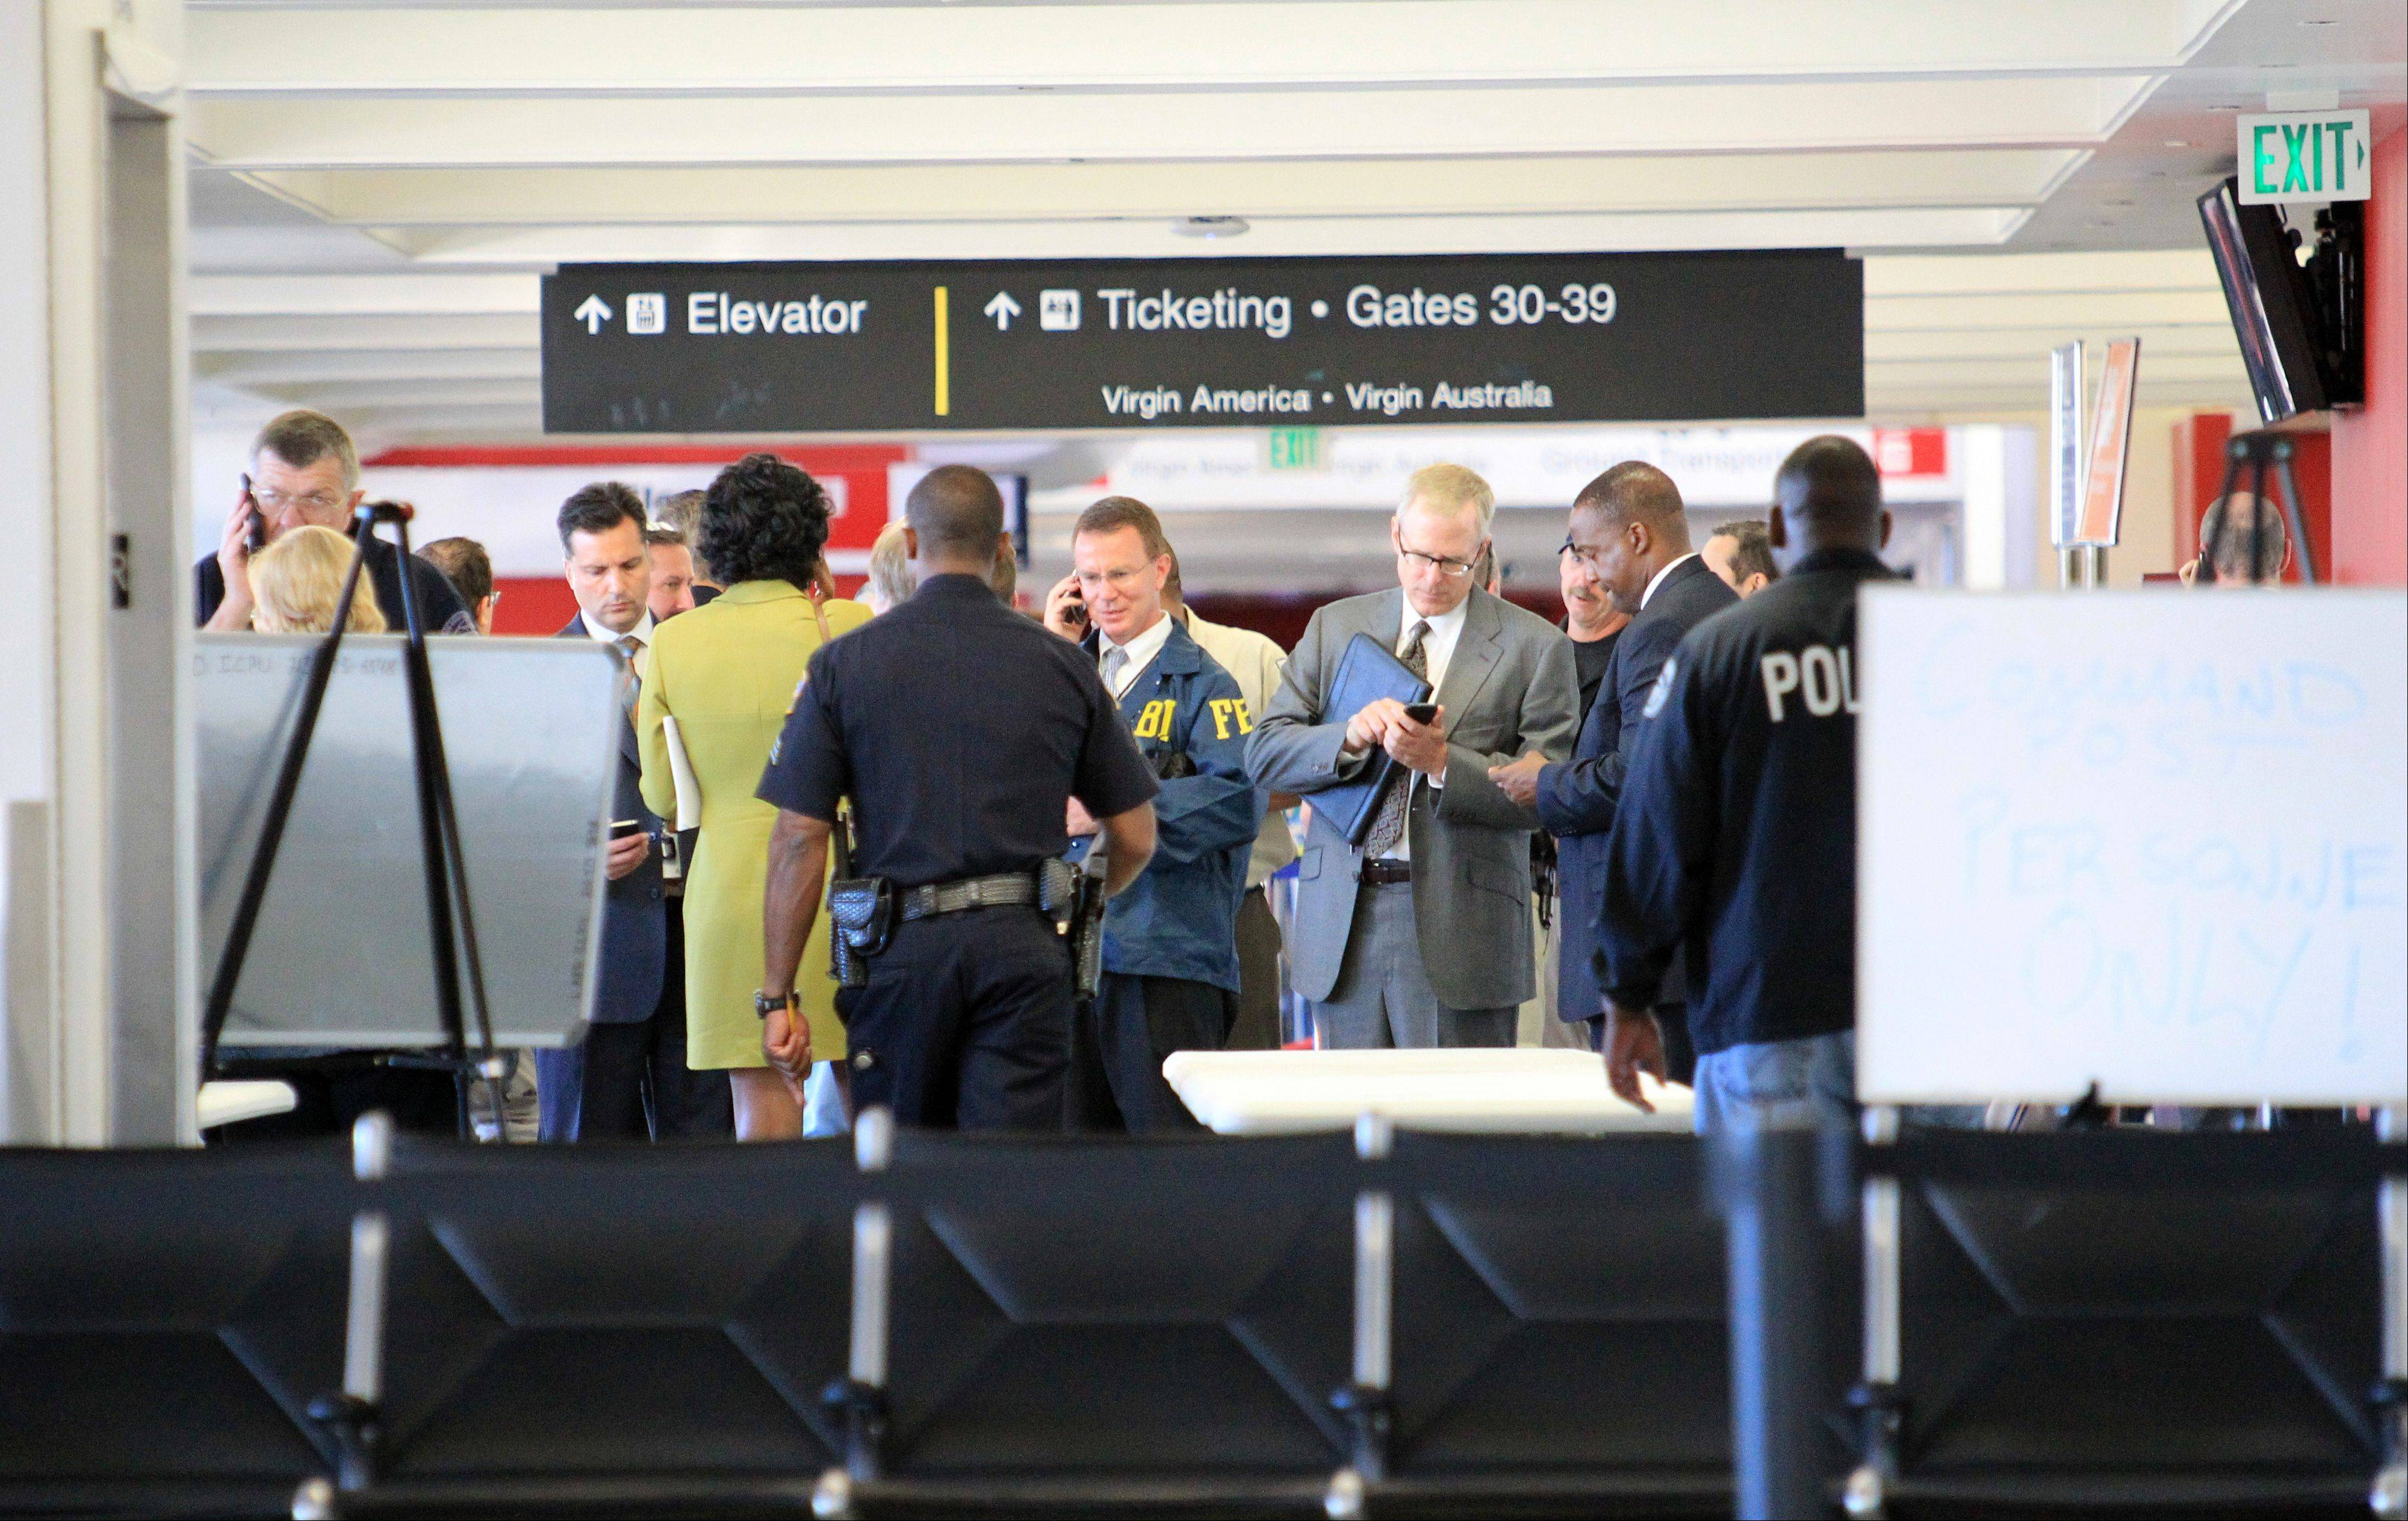 Minutes before a gunman opened fire in a Los Angeles International Airport terminal last fall, killing a security screener and wounding three other people, the two armed officers (not seen in this photo) assigned to the area left for breaks without informing a dispatcher as required.